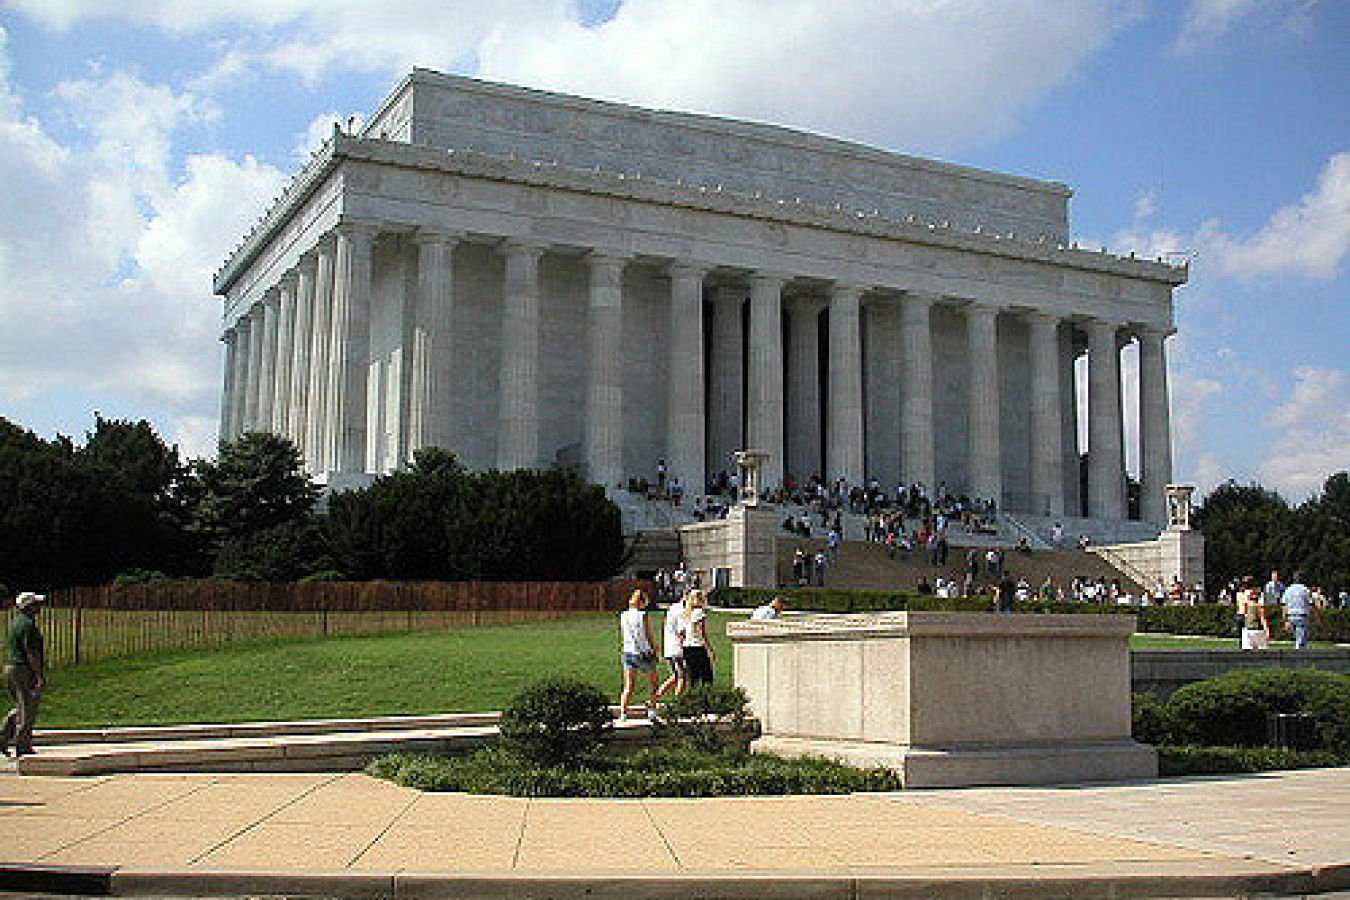 Lincoln Memorial Front